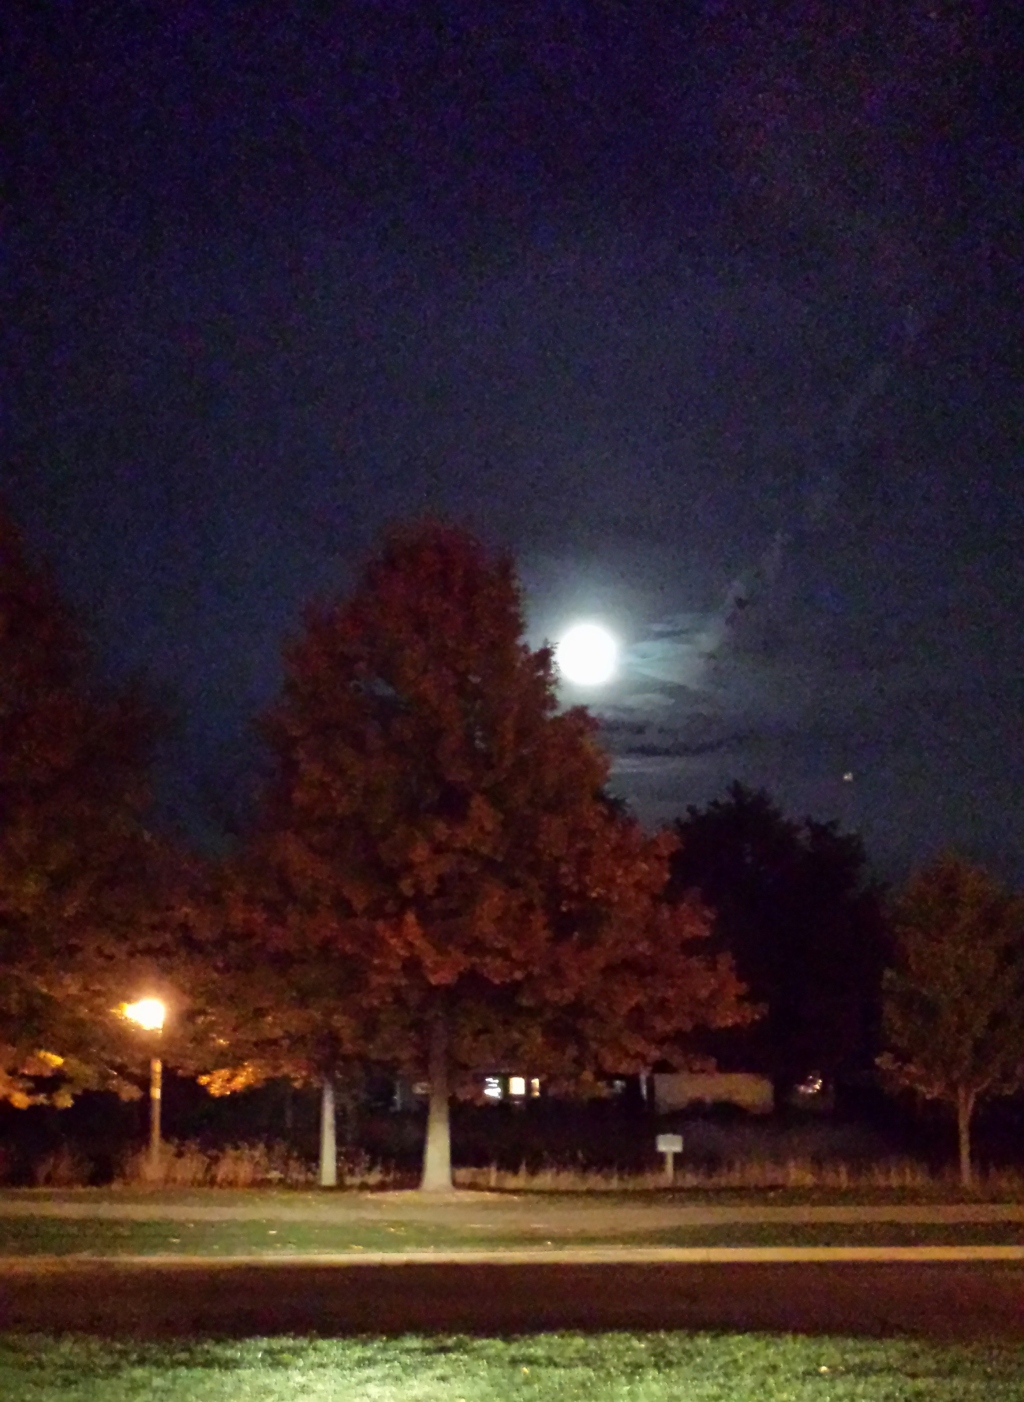 Full moon appears above a red maple tree - Prairie Lakes parking lot.